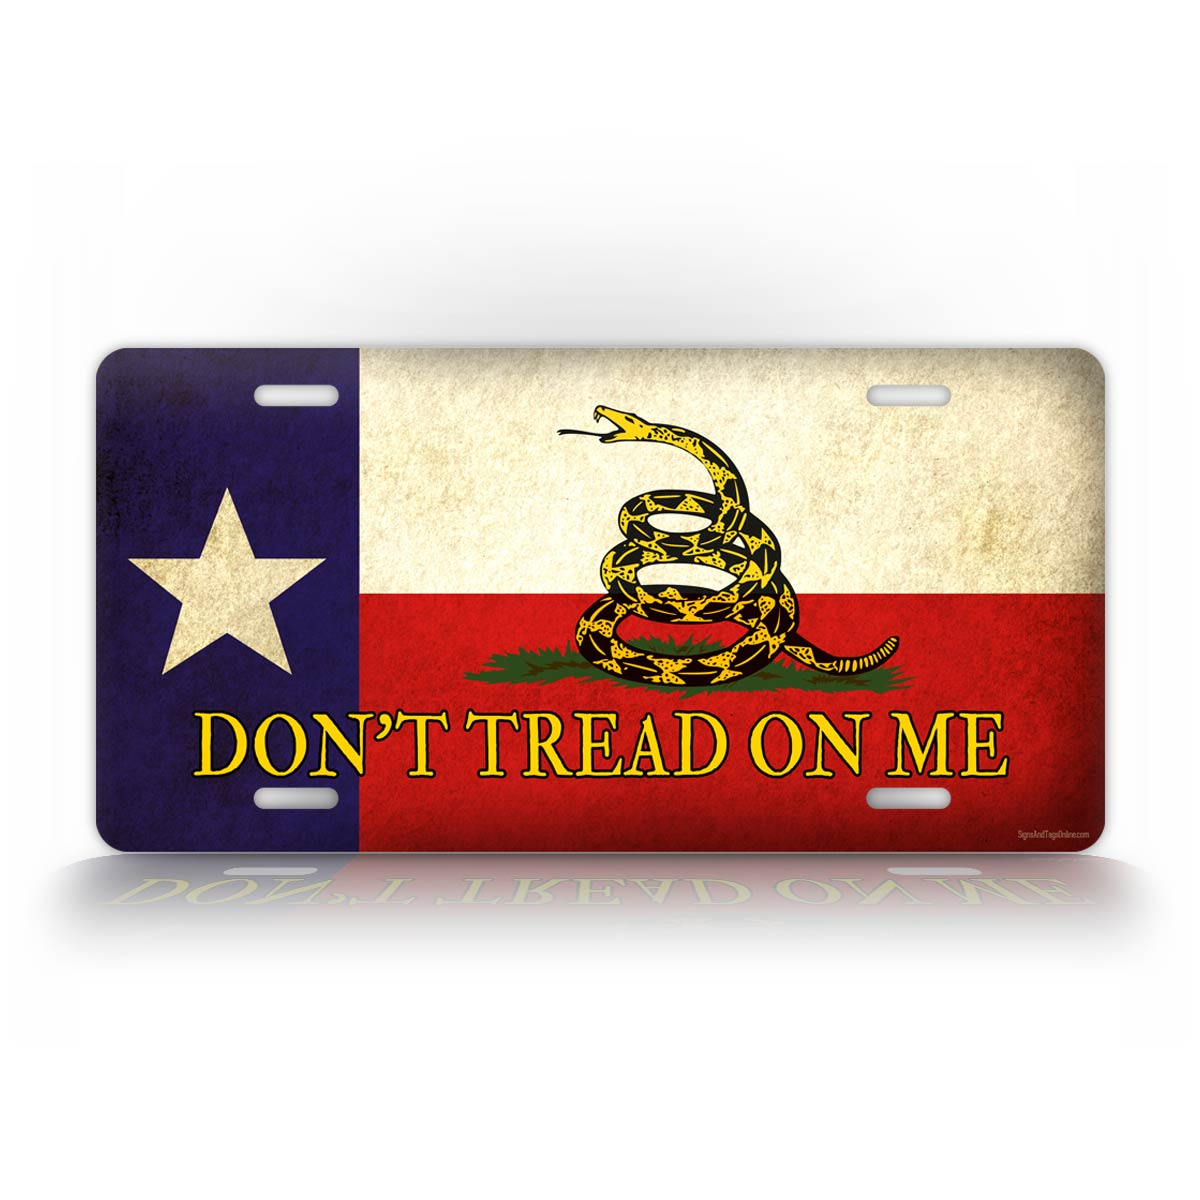 Rustic Dont Tread On Me Texas Flag License Plate